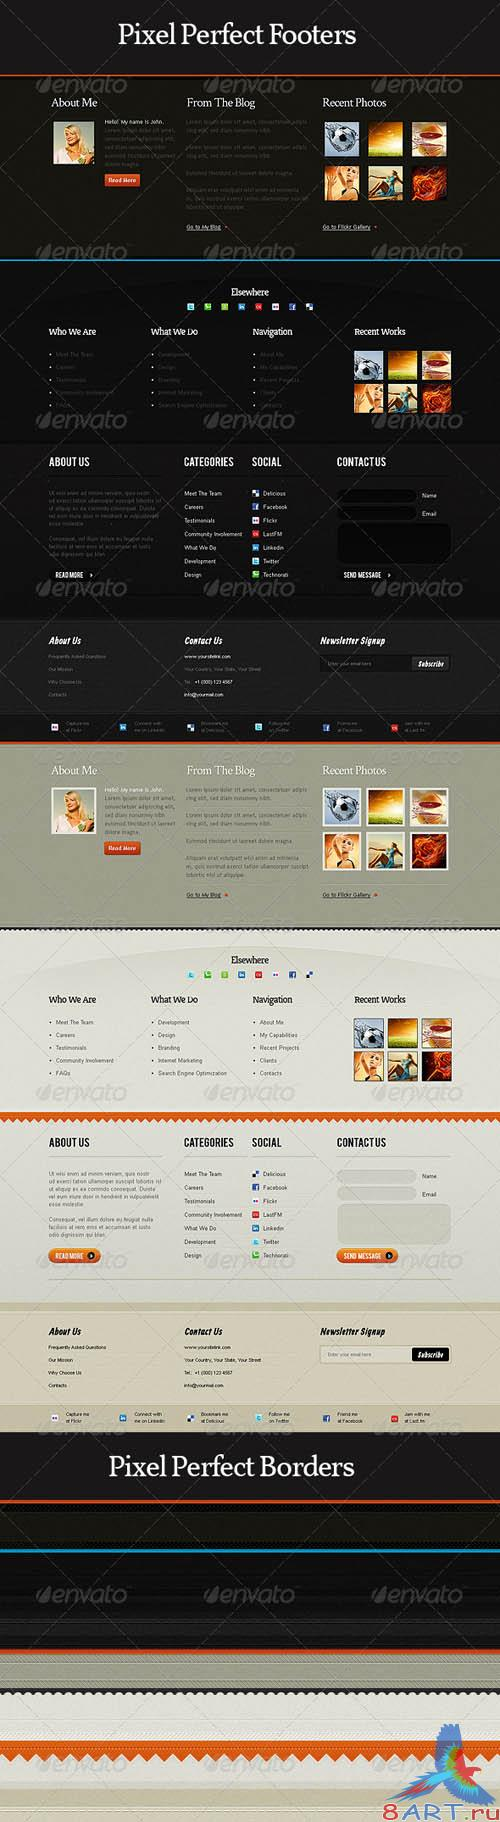 GraphicRiver Pixel Perfect Footers and Borders